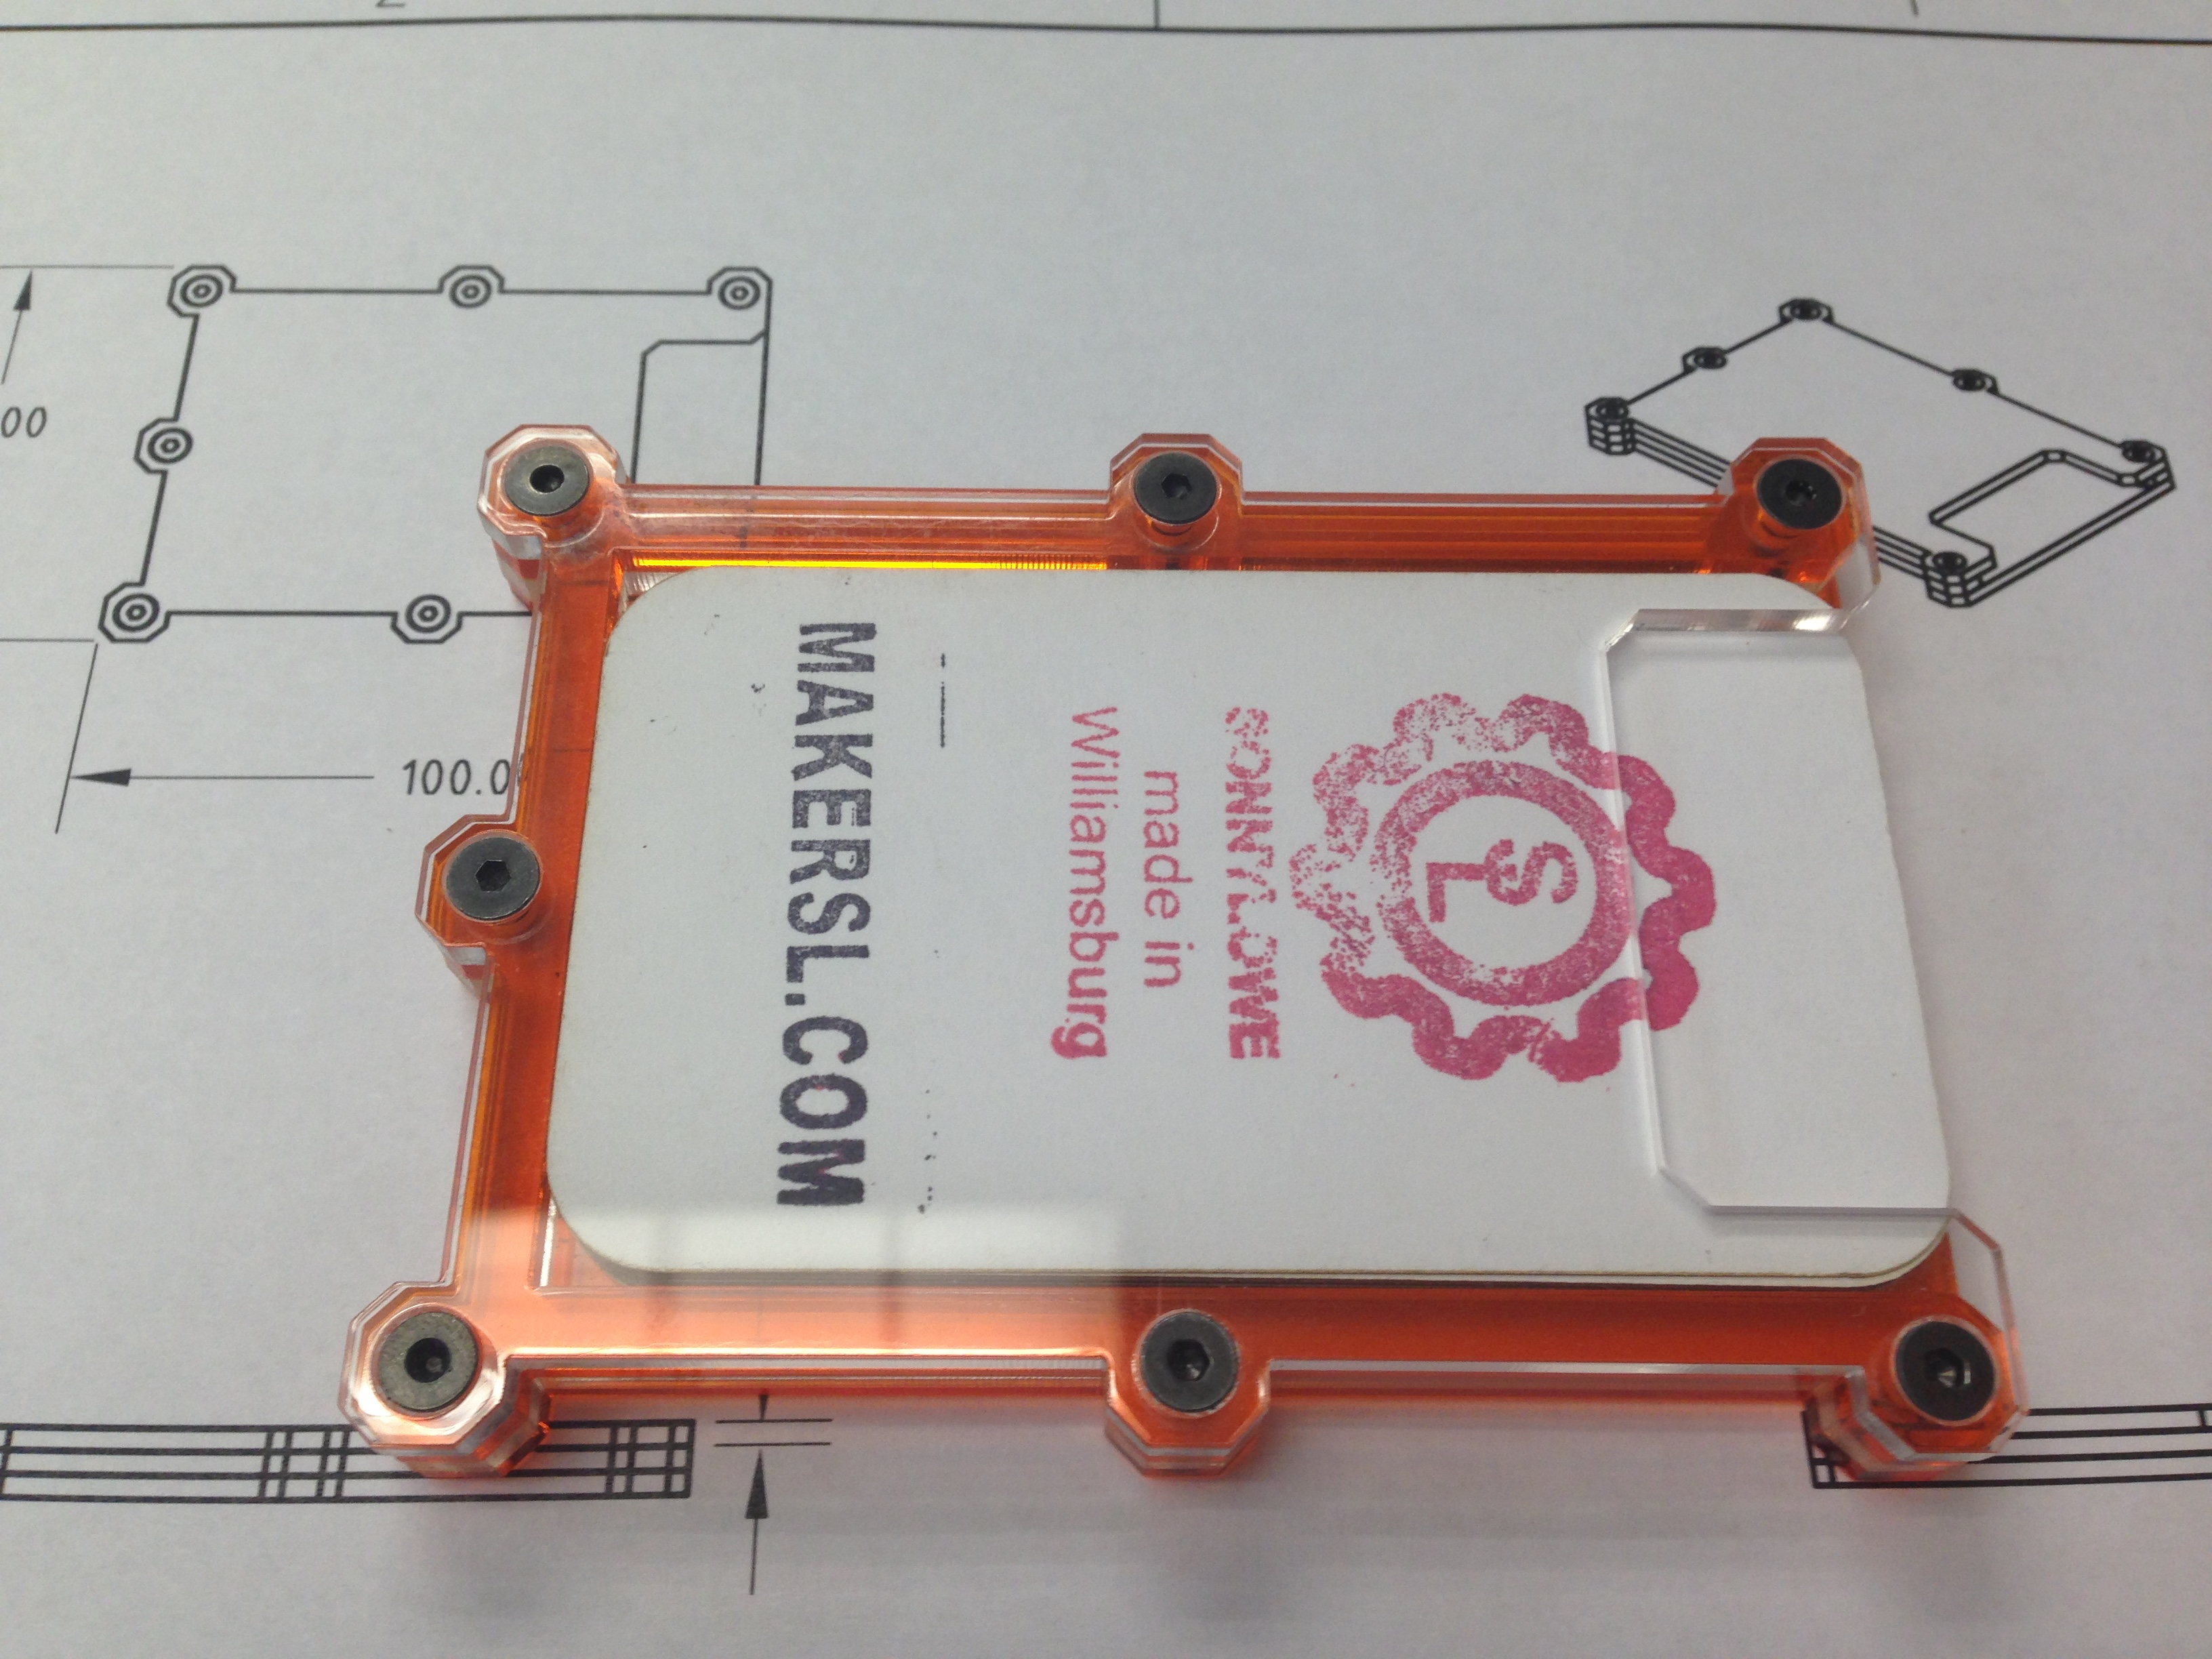 MakerSL Acrylic Laser Cut Or 3D Printed Business Card Holder By Sonnylowe Apr 21 2016 View Original